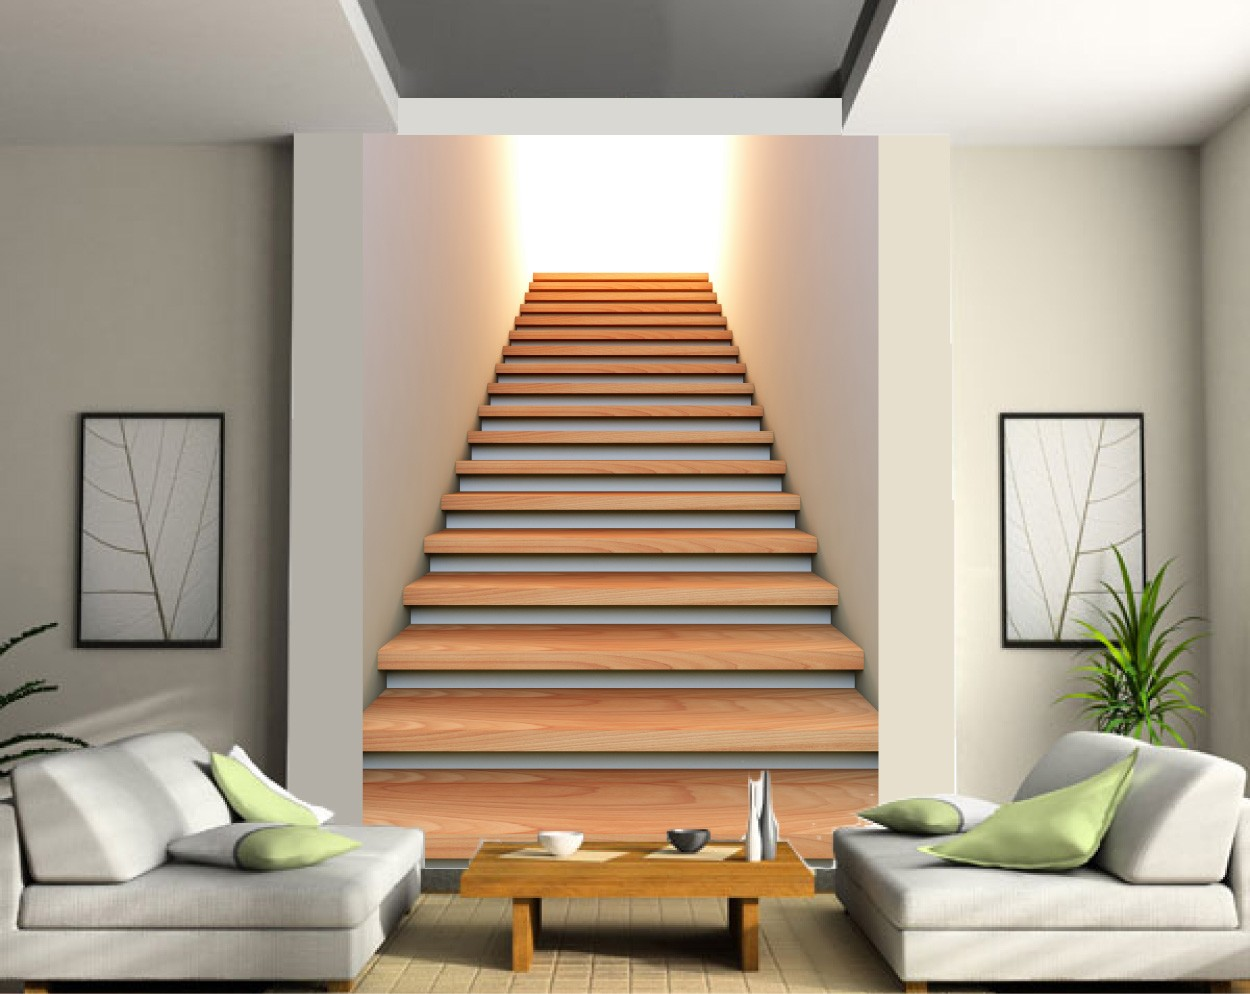 Decoration Montee Escalier Photos Decoration Montee Escalier Photos Decoration Montee